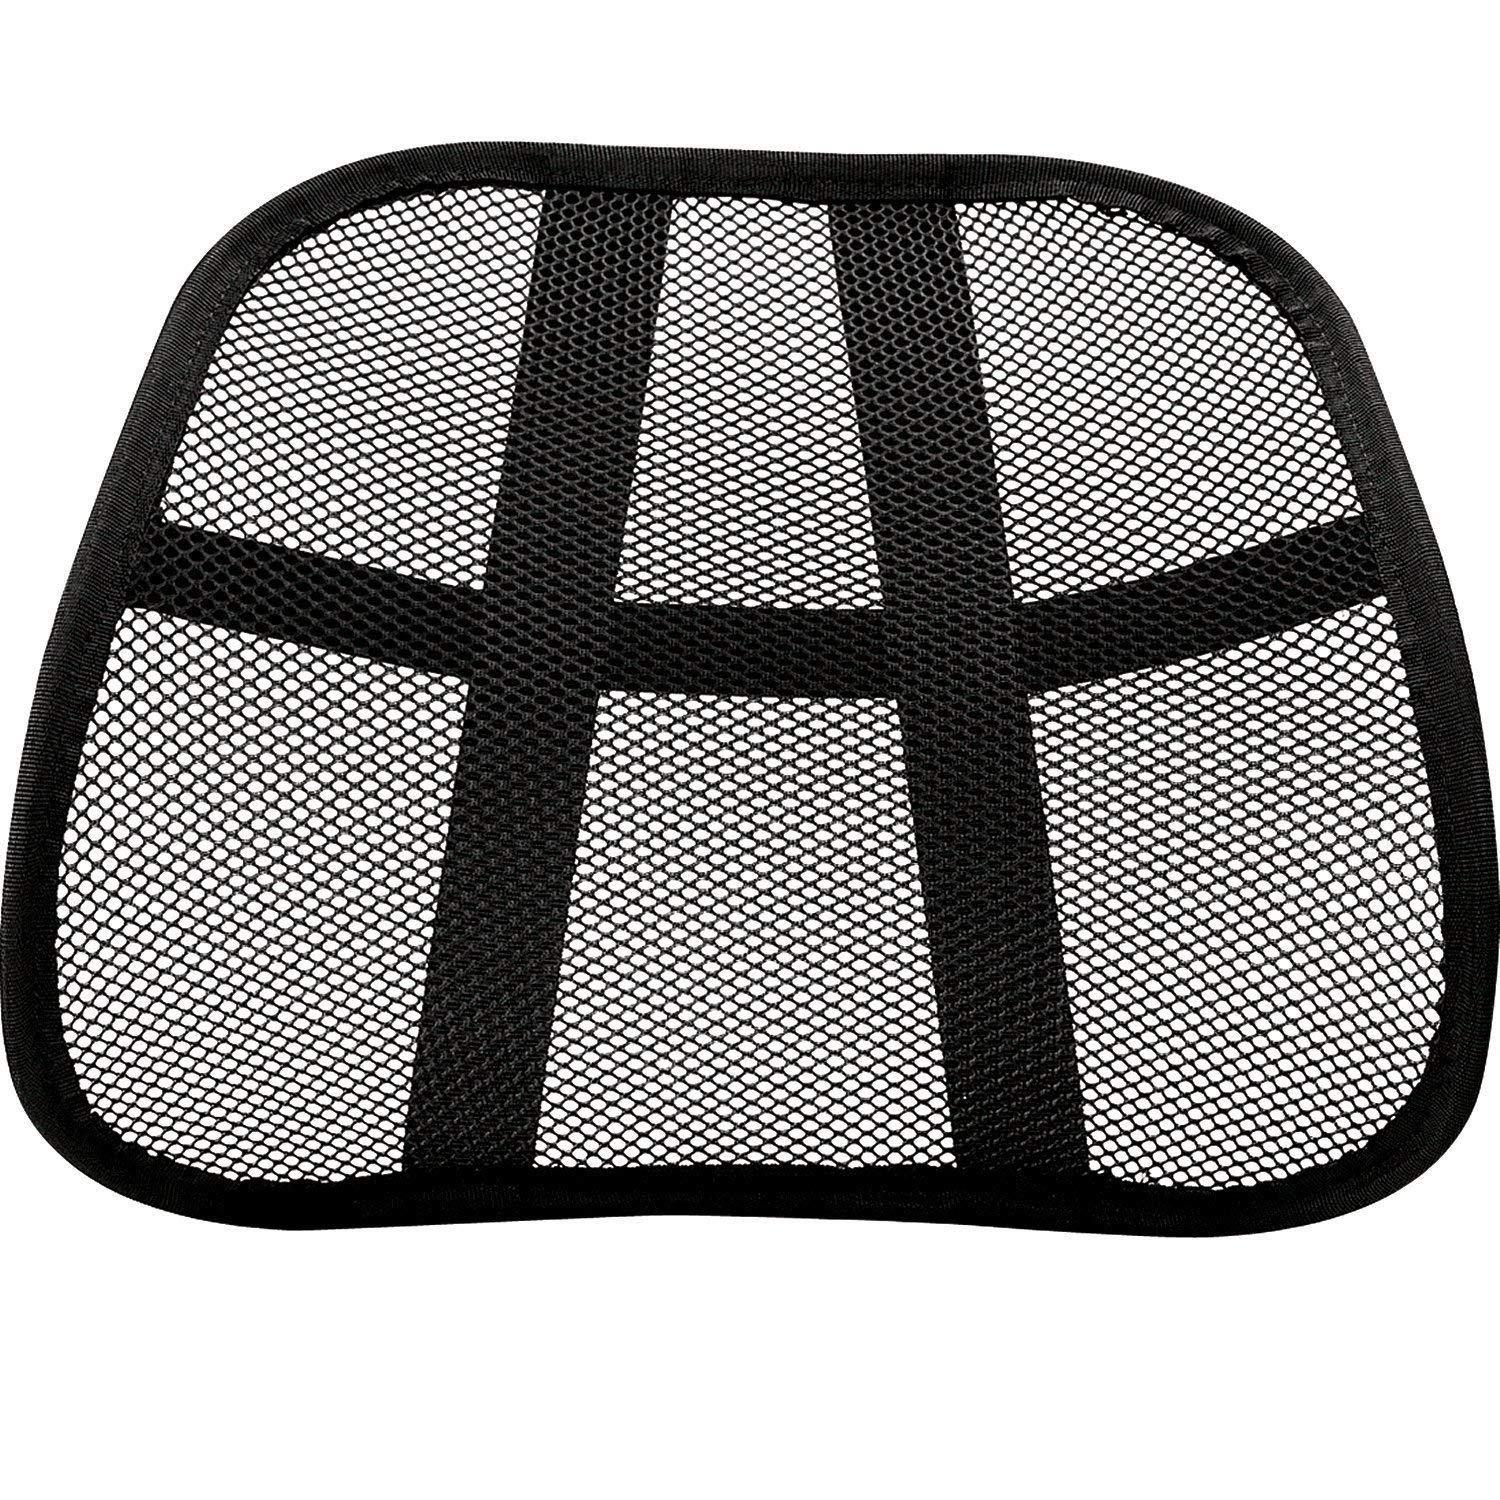 Plus Mi Life Cool Vent Cushion Mesh Back Lumbar Support New Car Office Chair Truck Seat Black